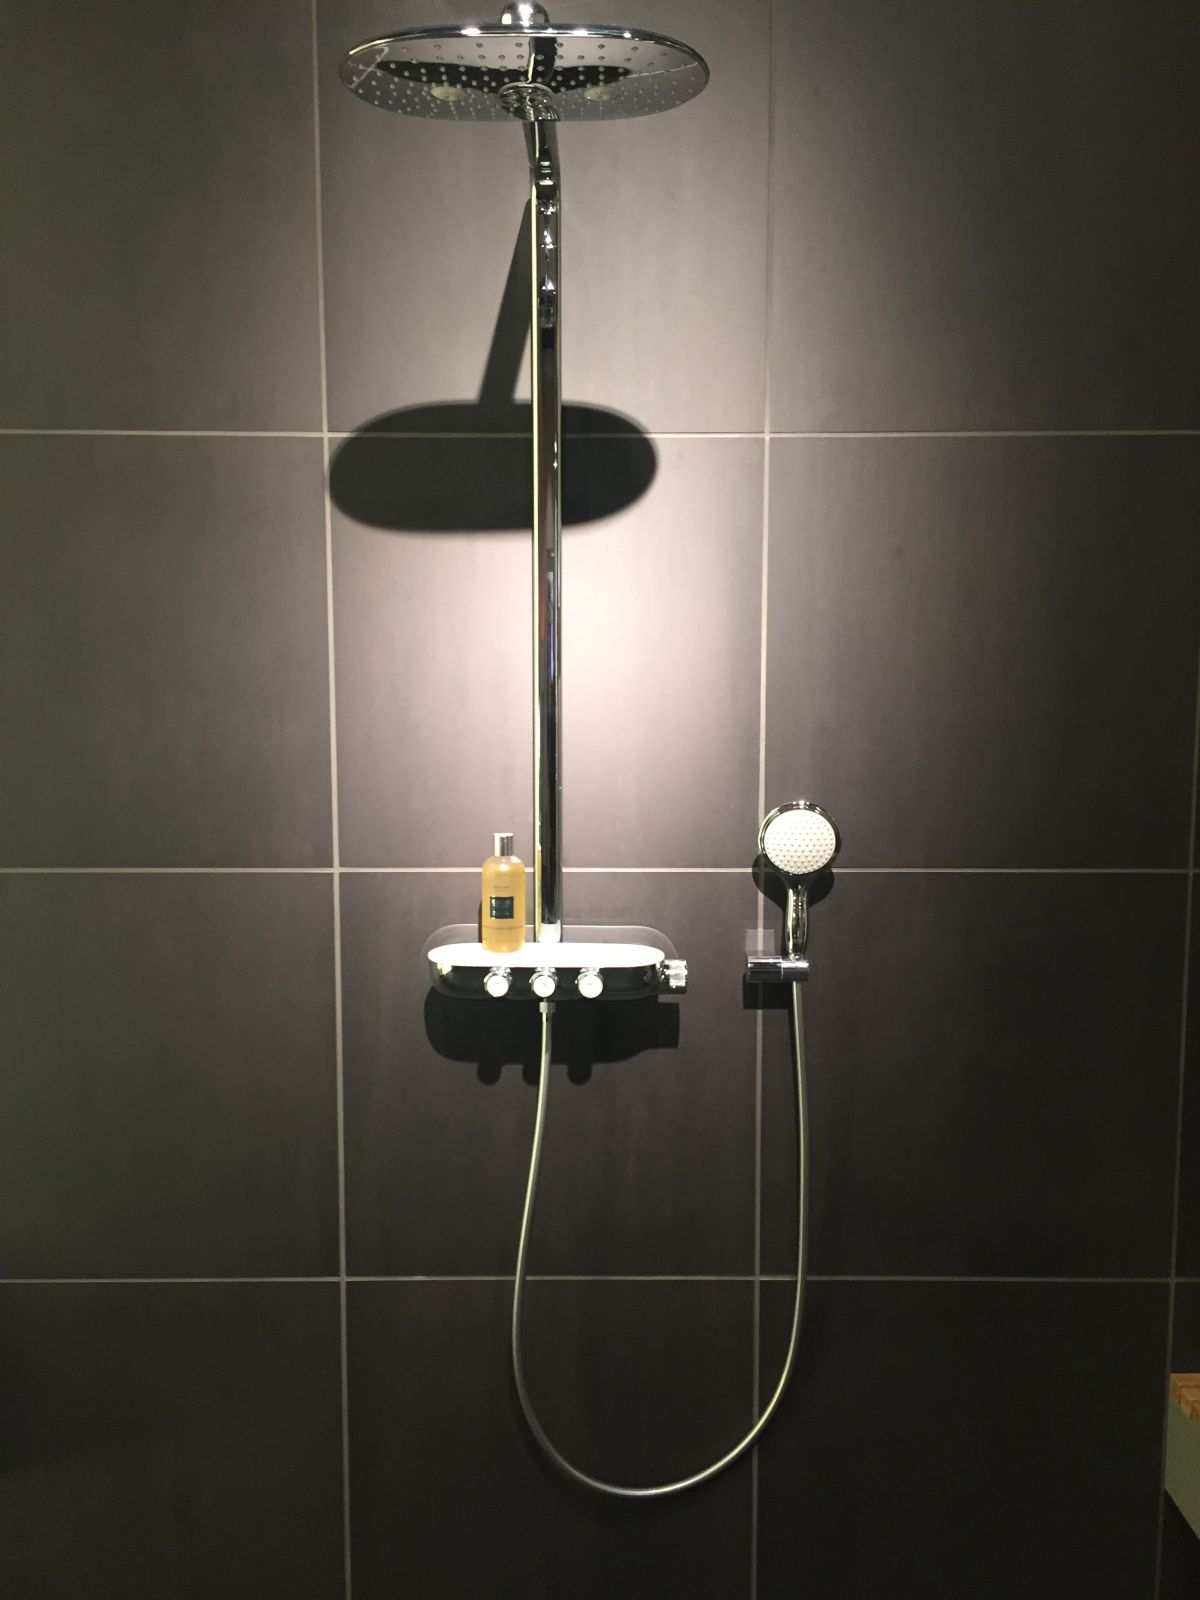 Sleek shower faucet